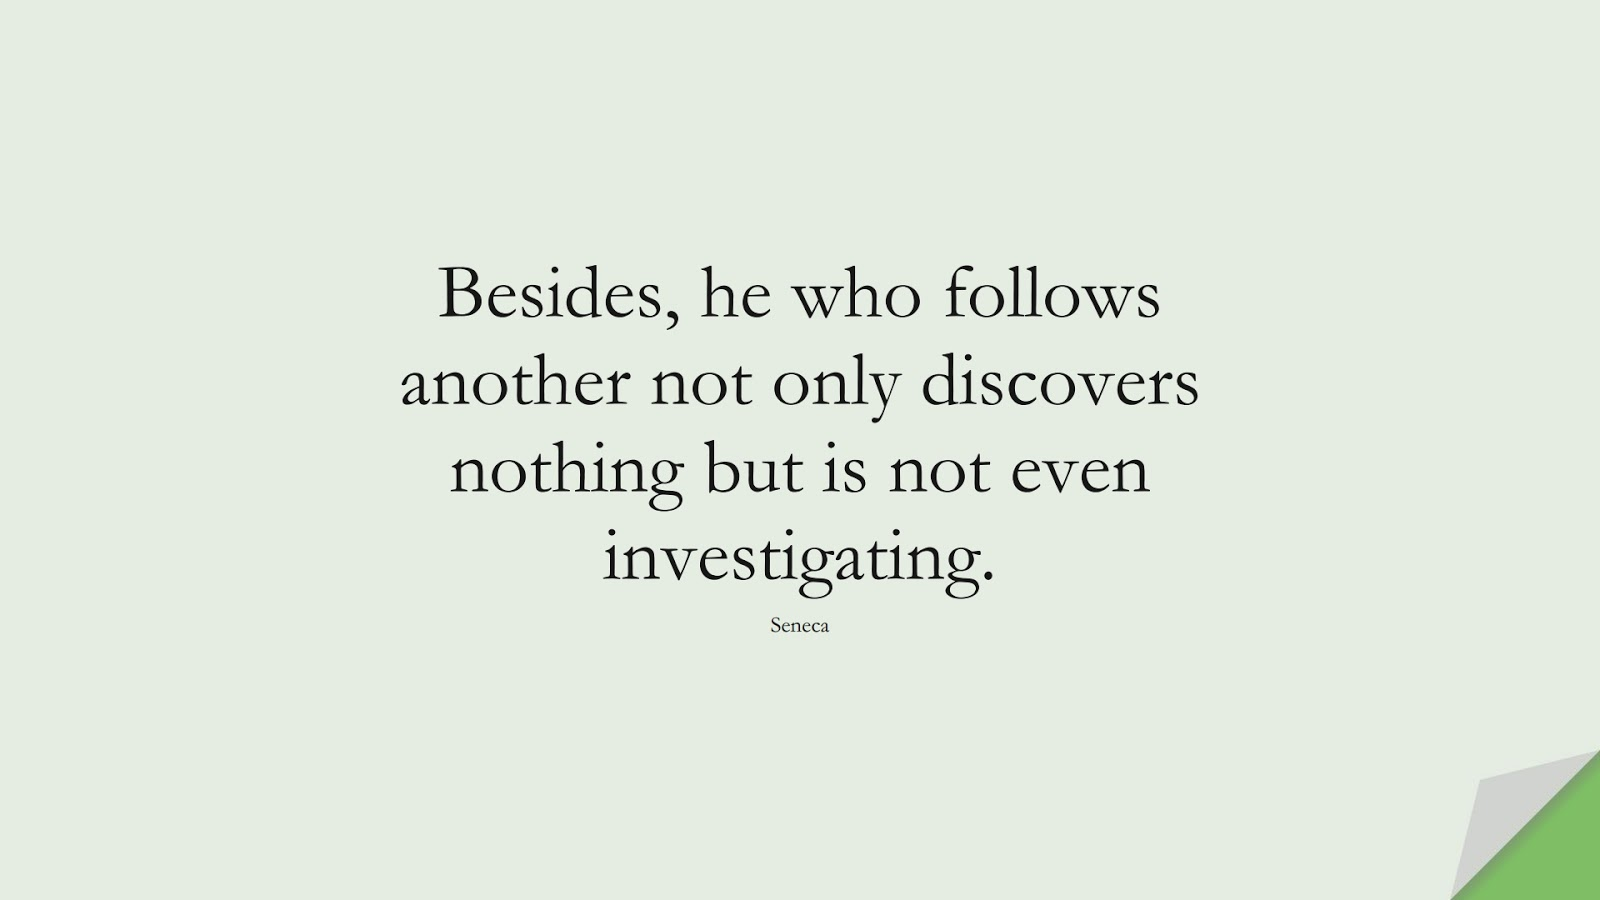 Besides, he who follows another not only discovers nothing but is not even investigating. (Seneca);  #SelfEsteemQuotes